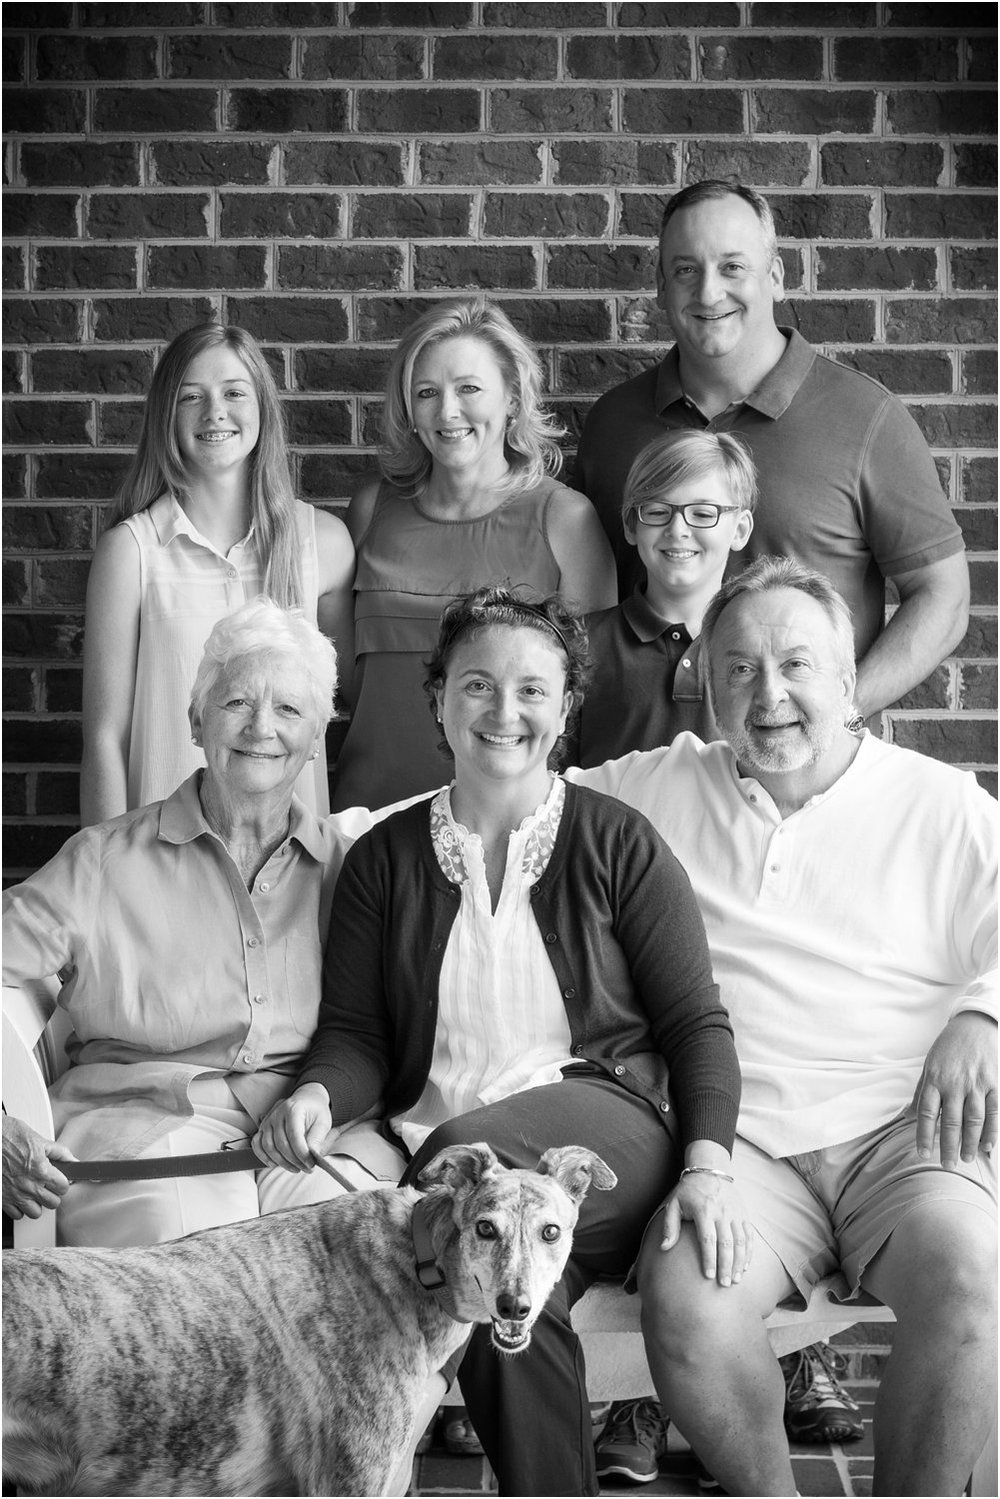 Harrisonburg_Family_Portraits_Pinneri_0014.jpg